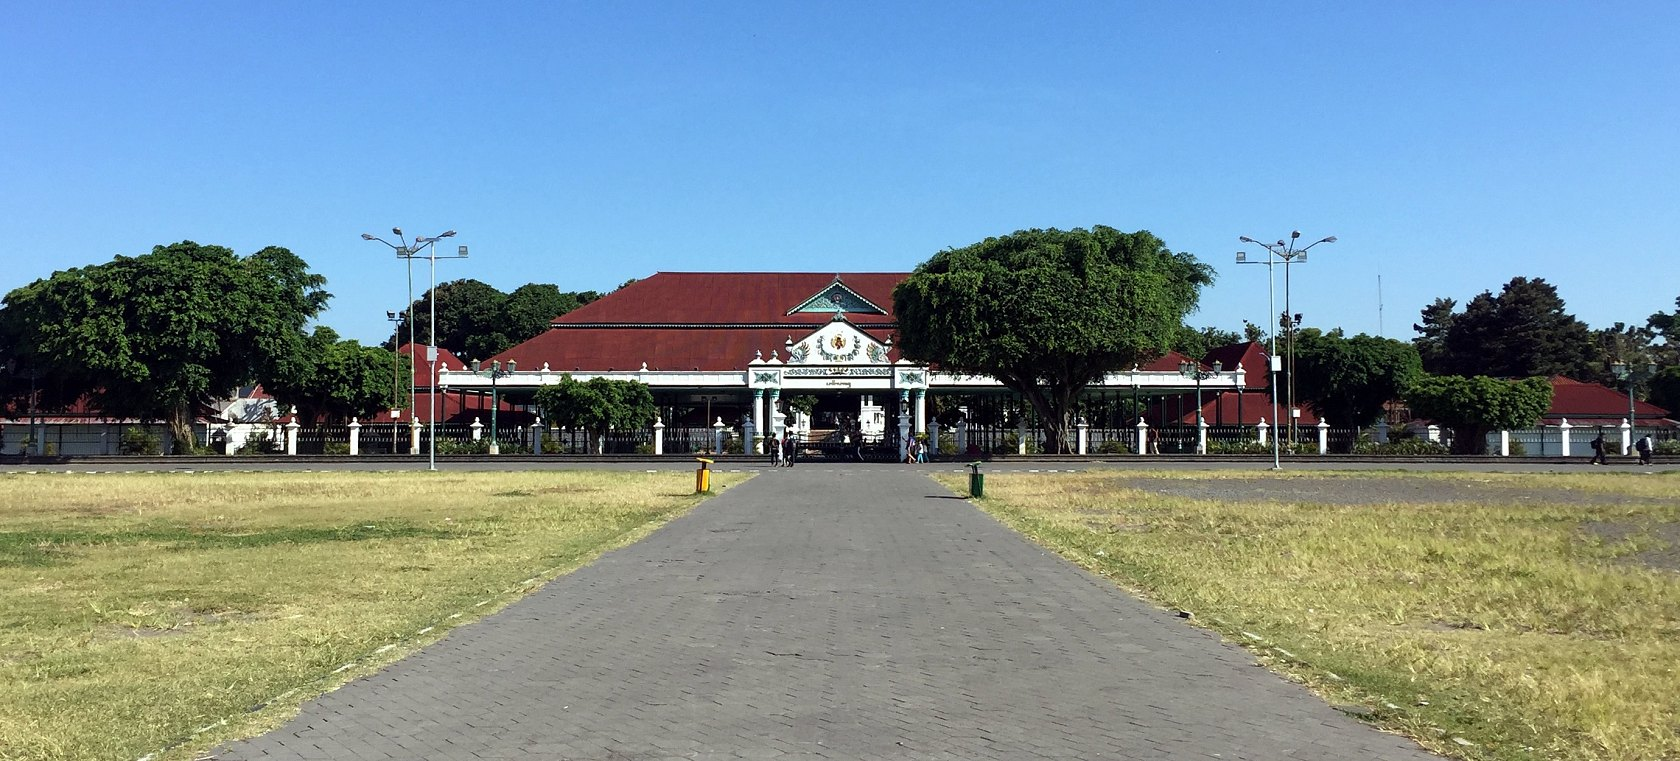 We also explored the Kraton Ngayogyakarta Hadiningrat Palace (above) and the Fort Vredeburg Museum which is a museum about the Dutch colonization and the independence of Indonesia.